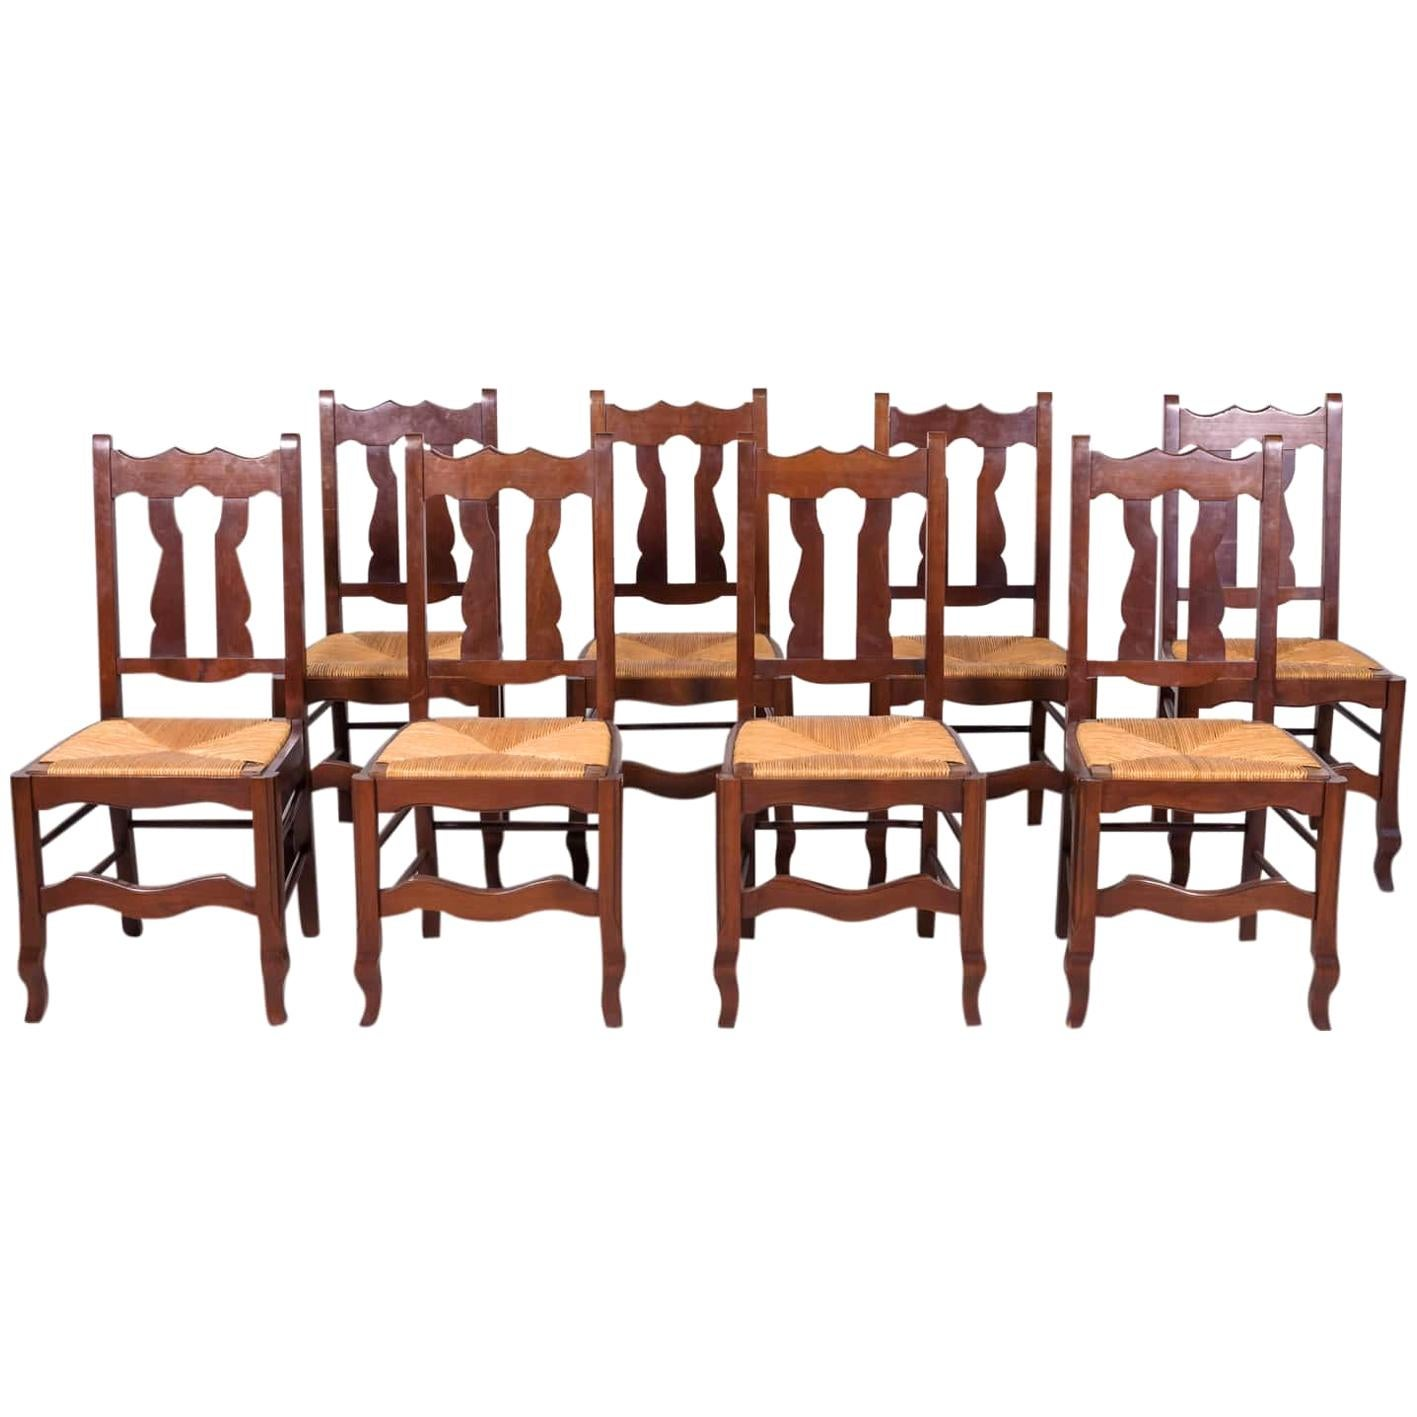 Set of 8 Antique Country French Hand Carved Oak Dining Chairs with Rush Seats